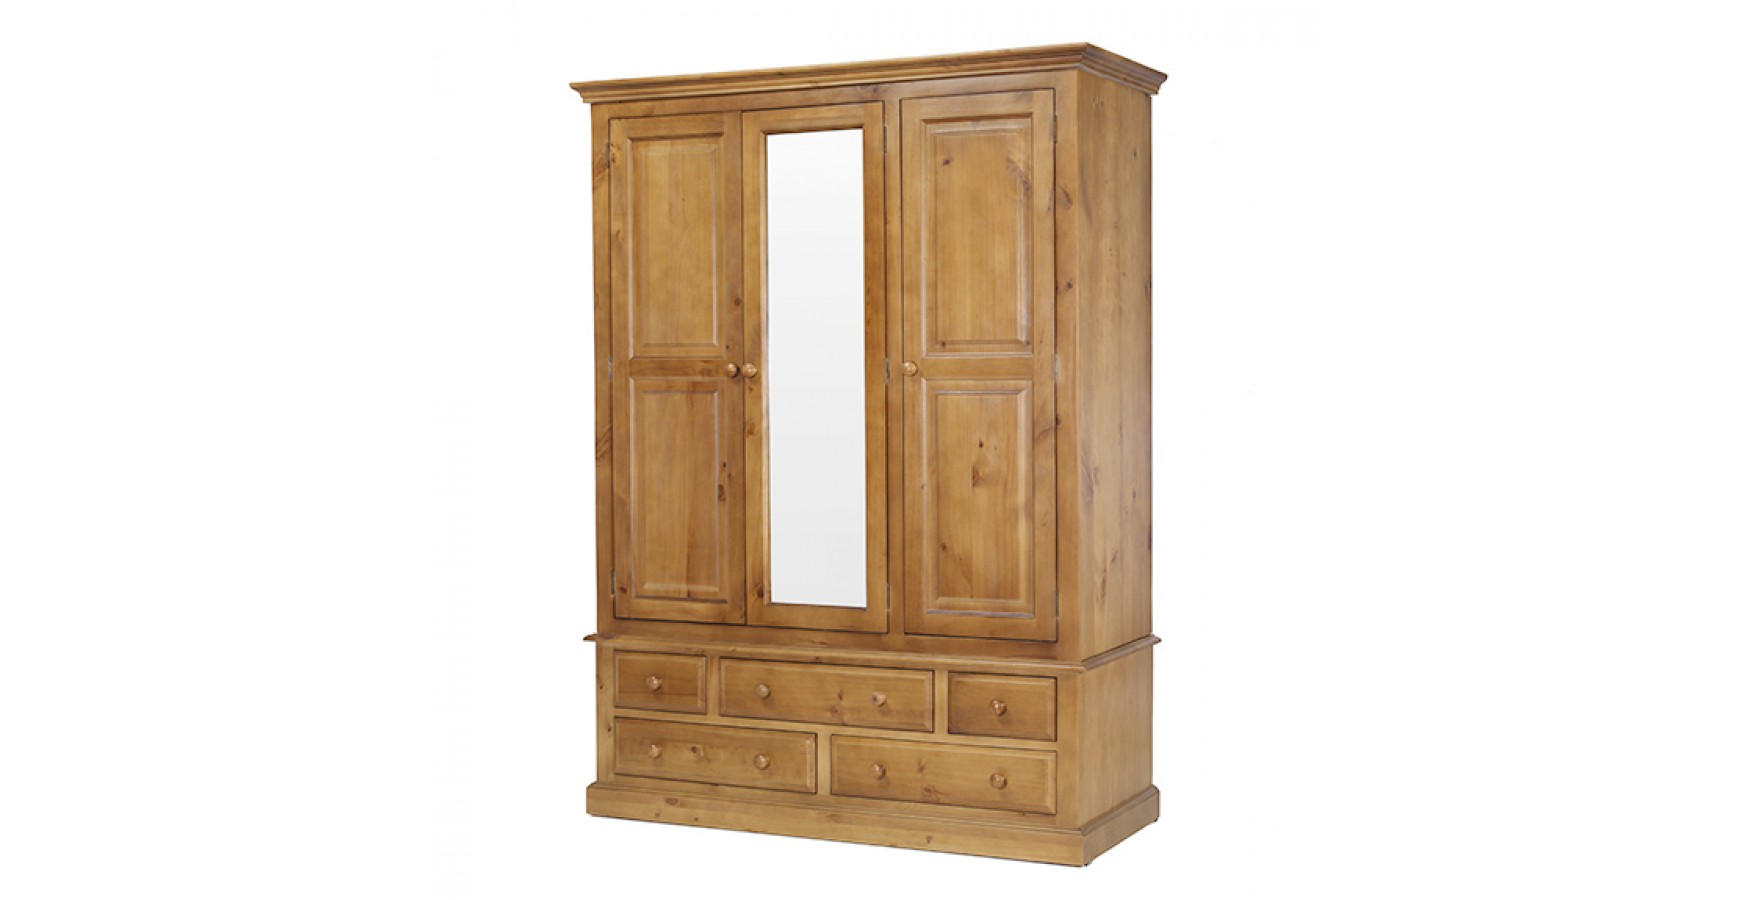 gwr wardrobehenleaze henleaze wardrobe wardrobes furniture gents drawer with drawers hambleton hbt detail painted door